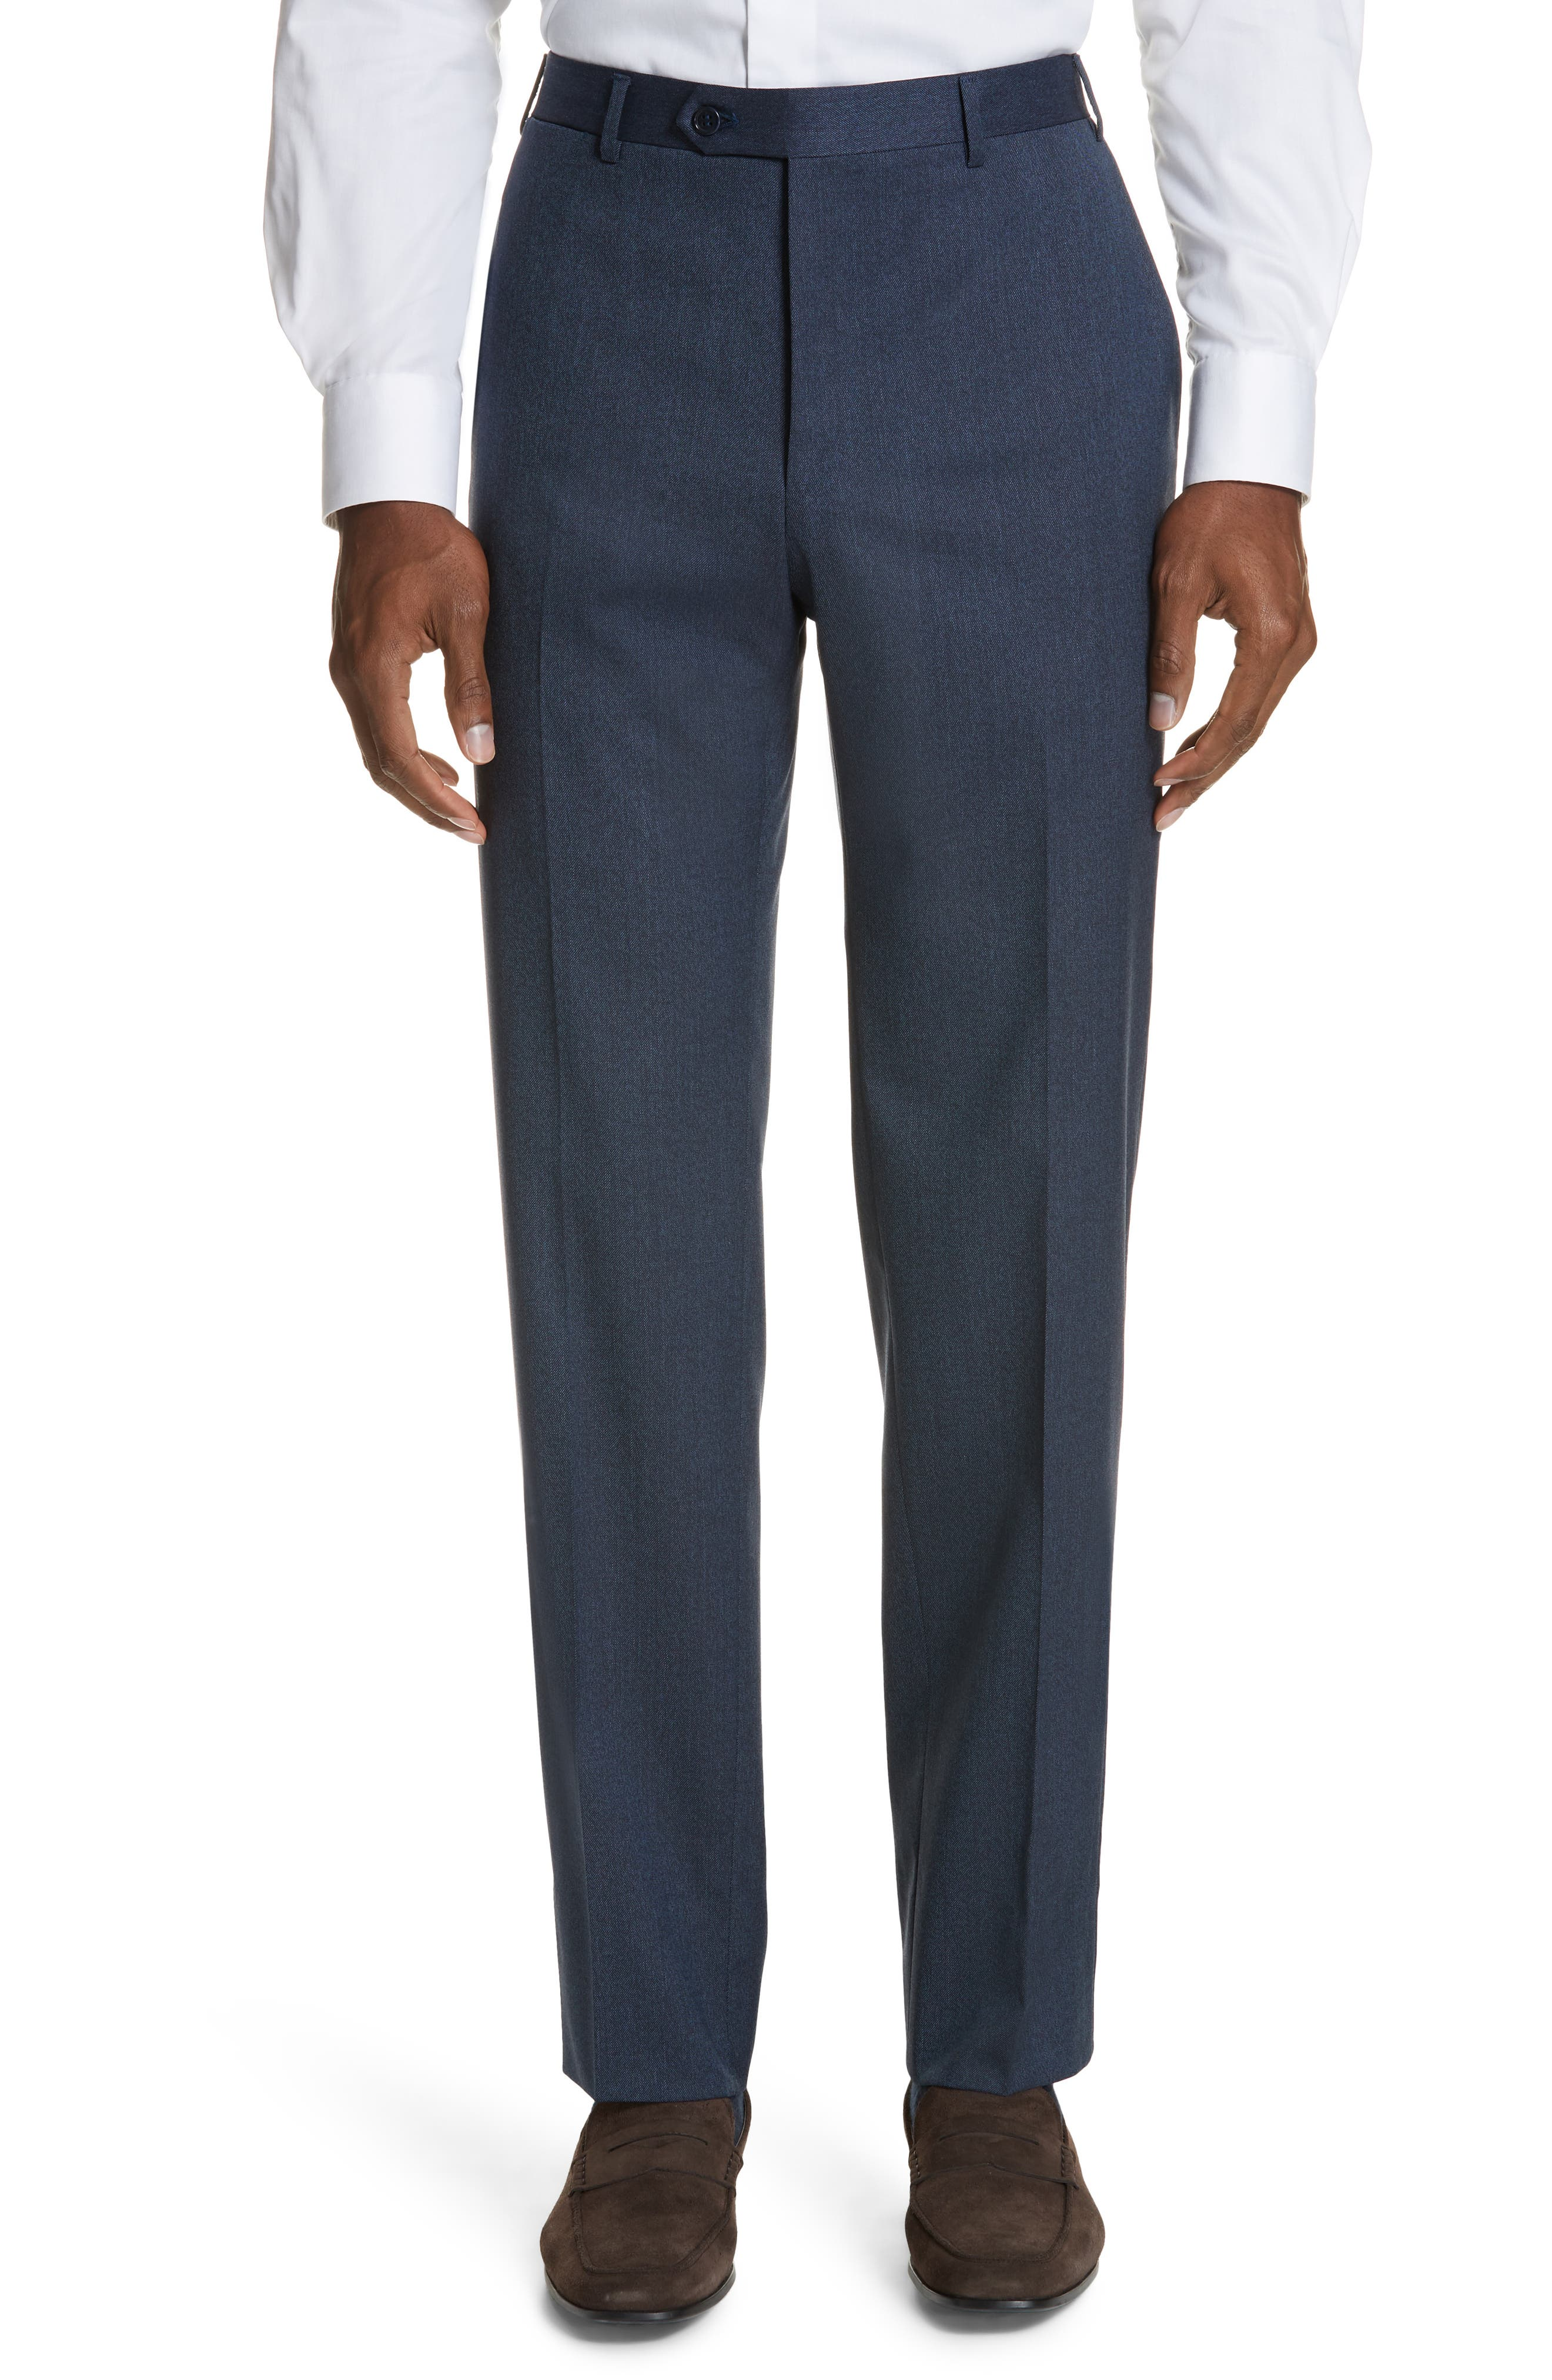 Cavaltry Flat Front Solid Stretch Wool Trousers,                         Main,                         color, DARK BLUE